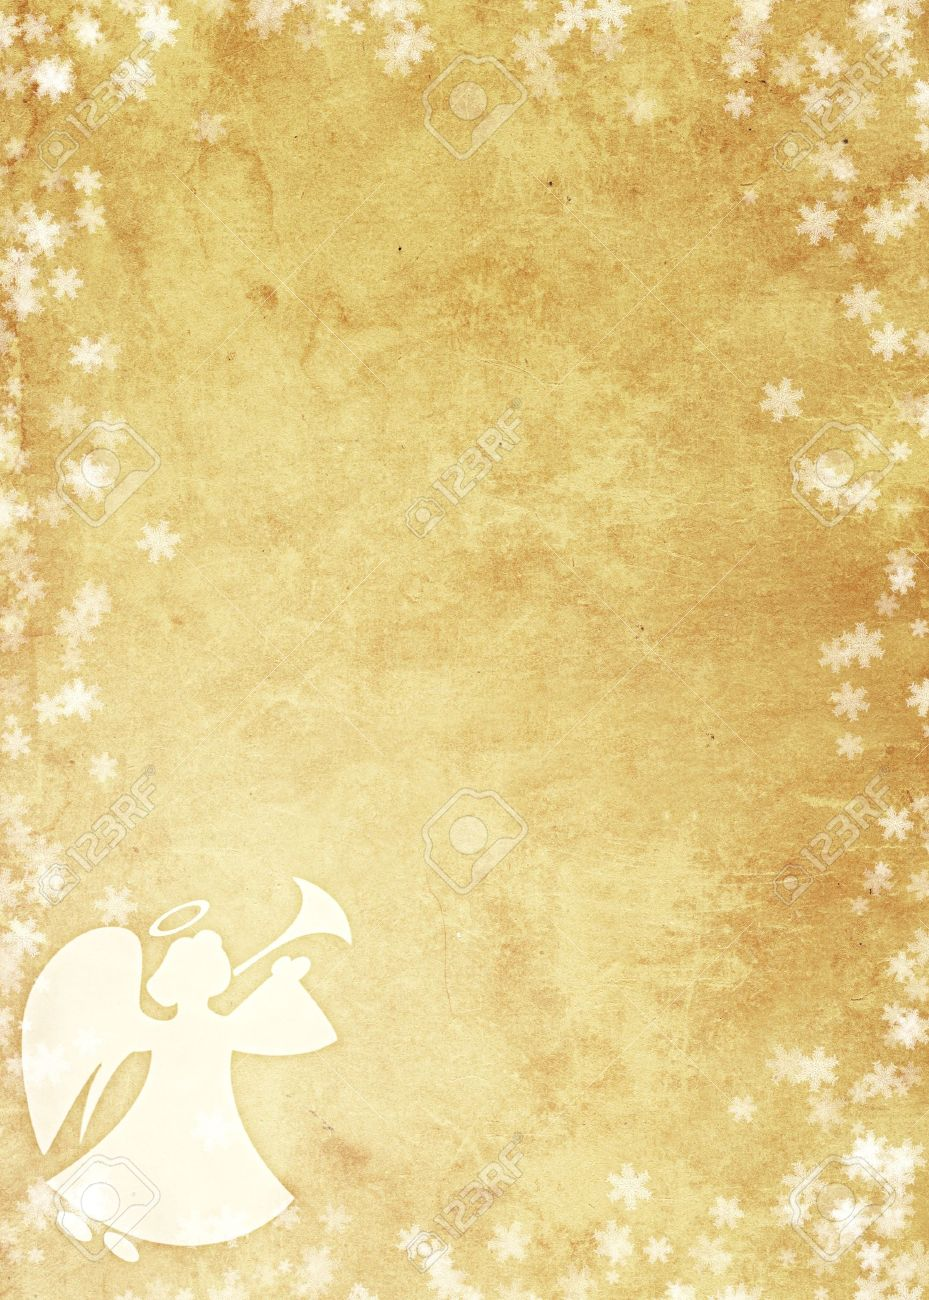 Christmas Grunge Background With Angel. Paper Texture Stock Photo ...